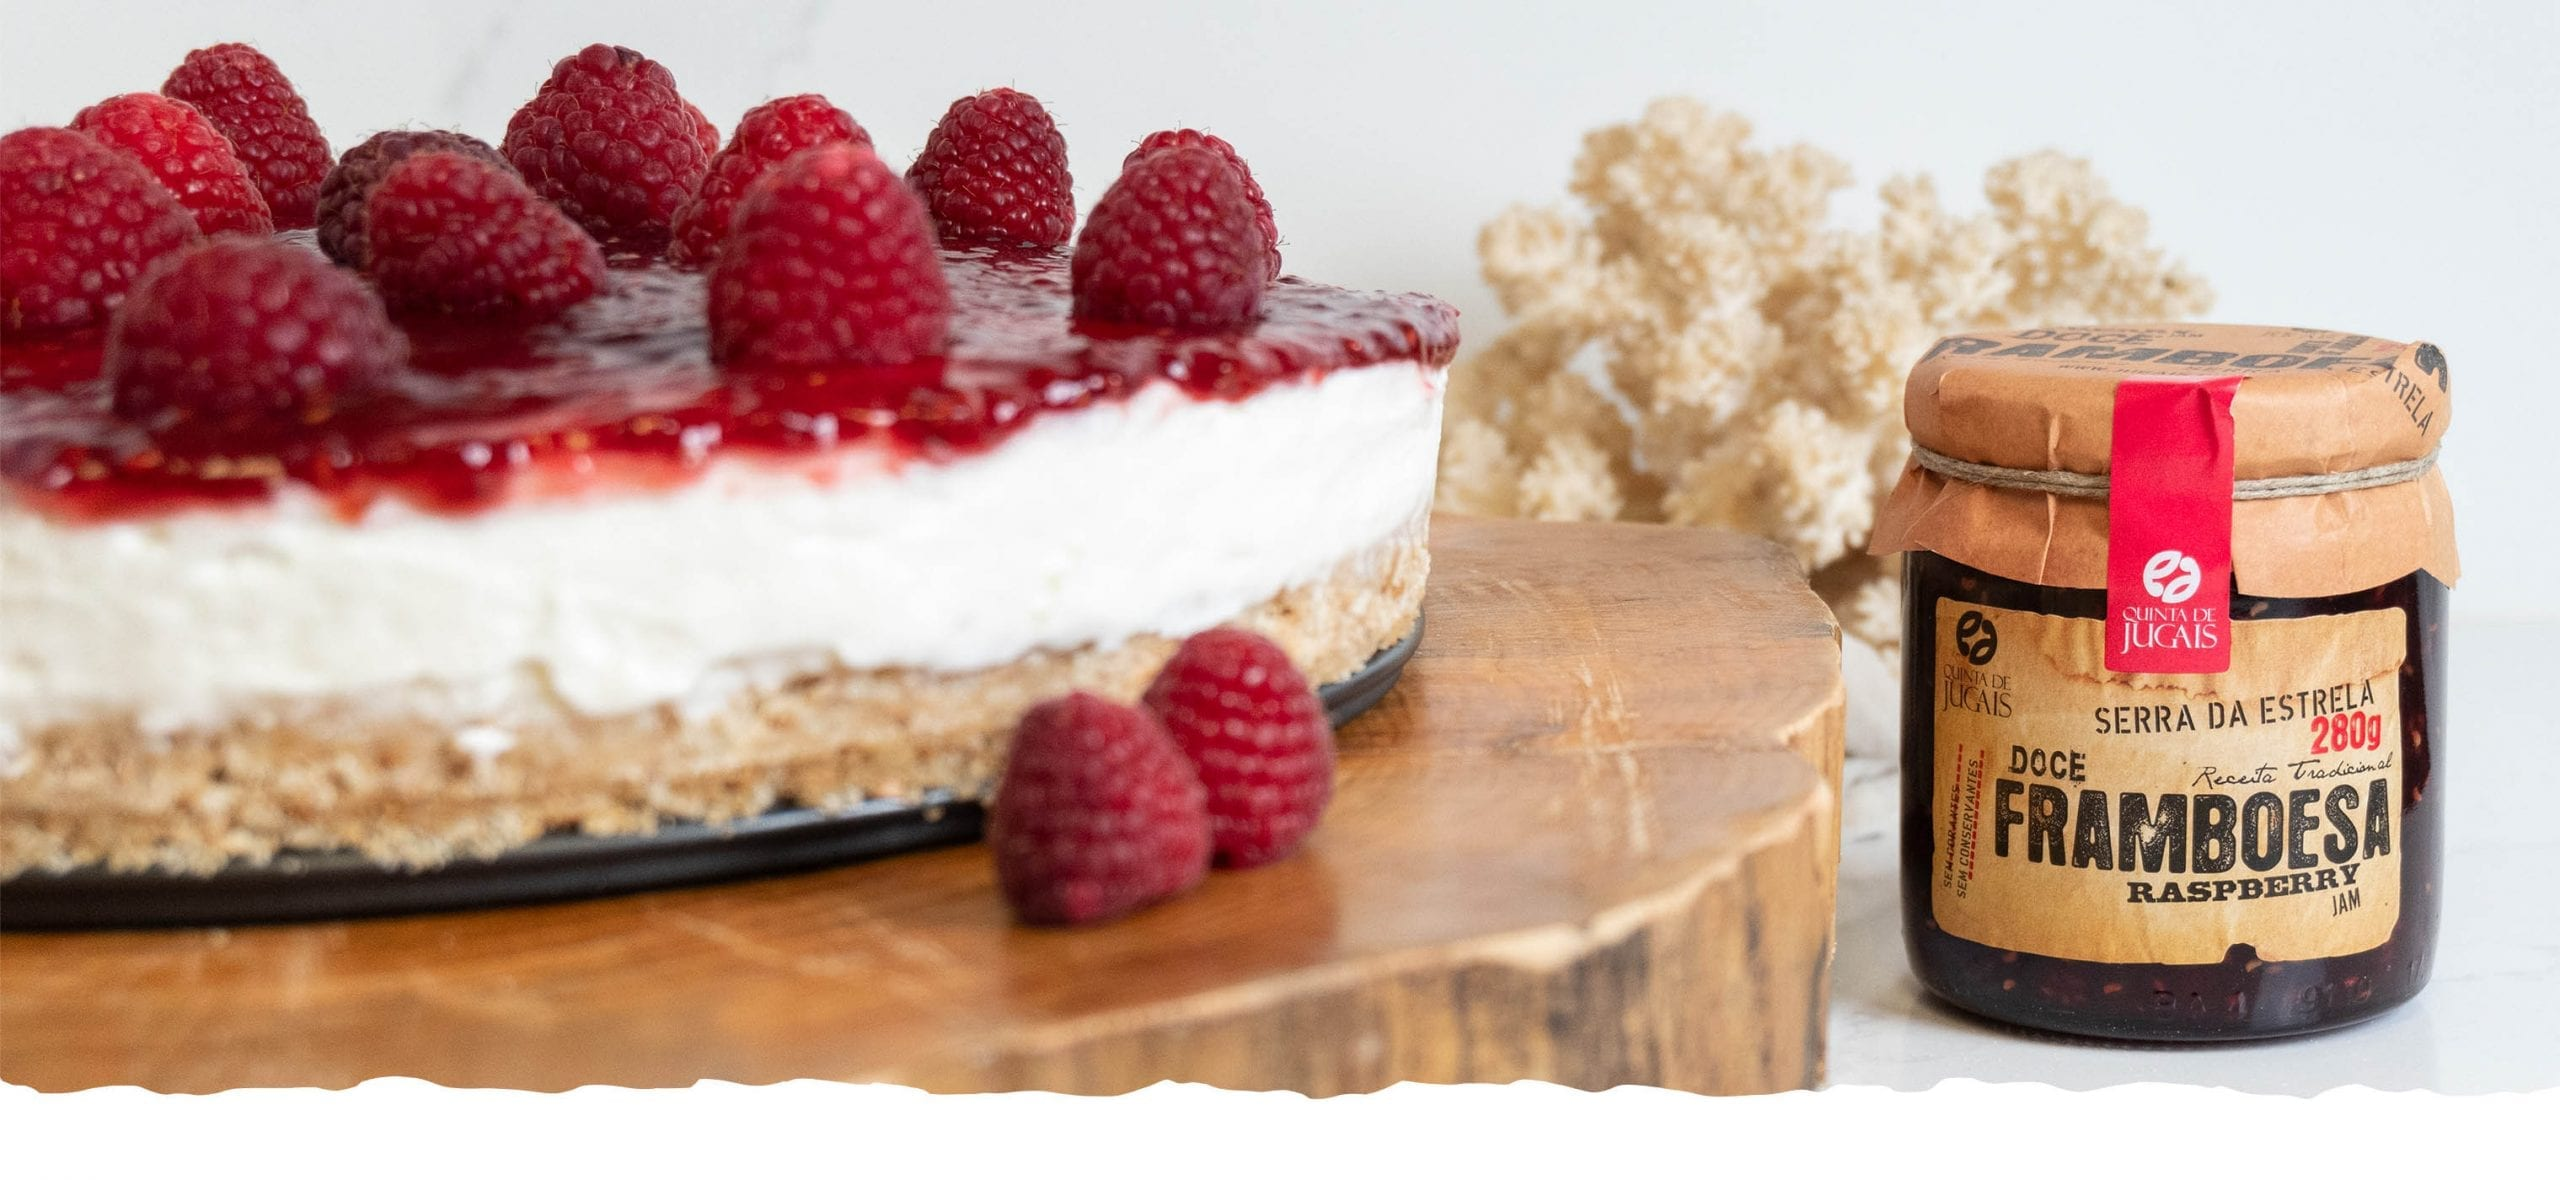 Cheesecake with Raspberry Jam